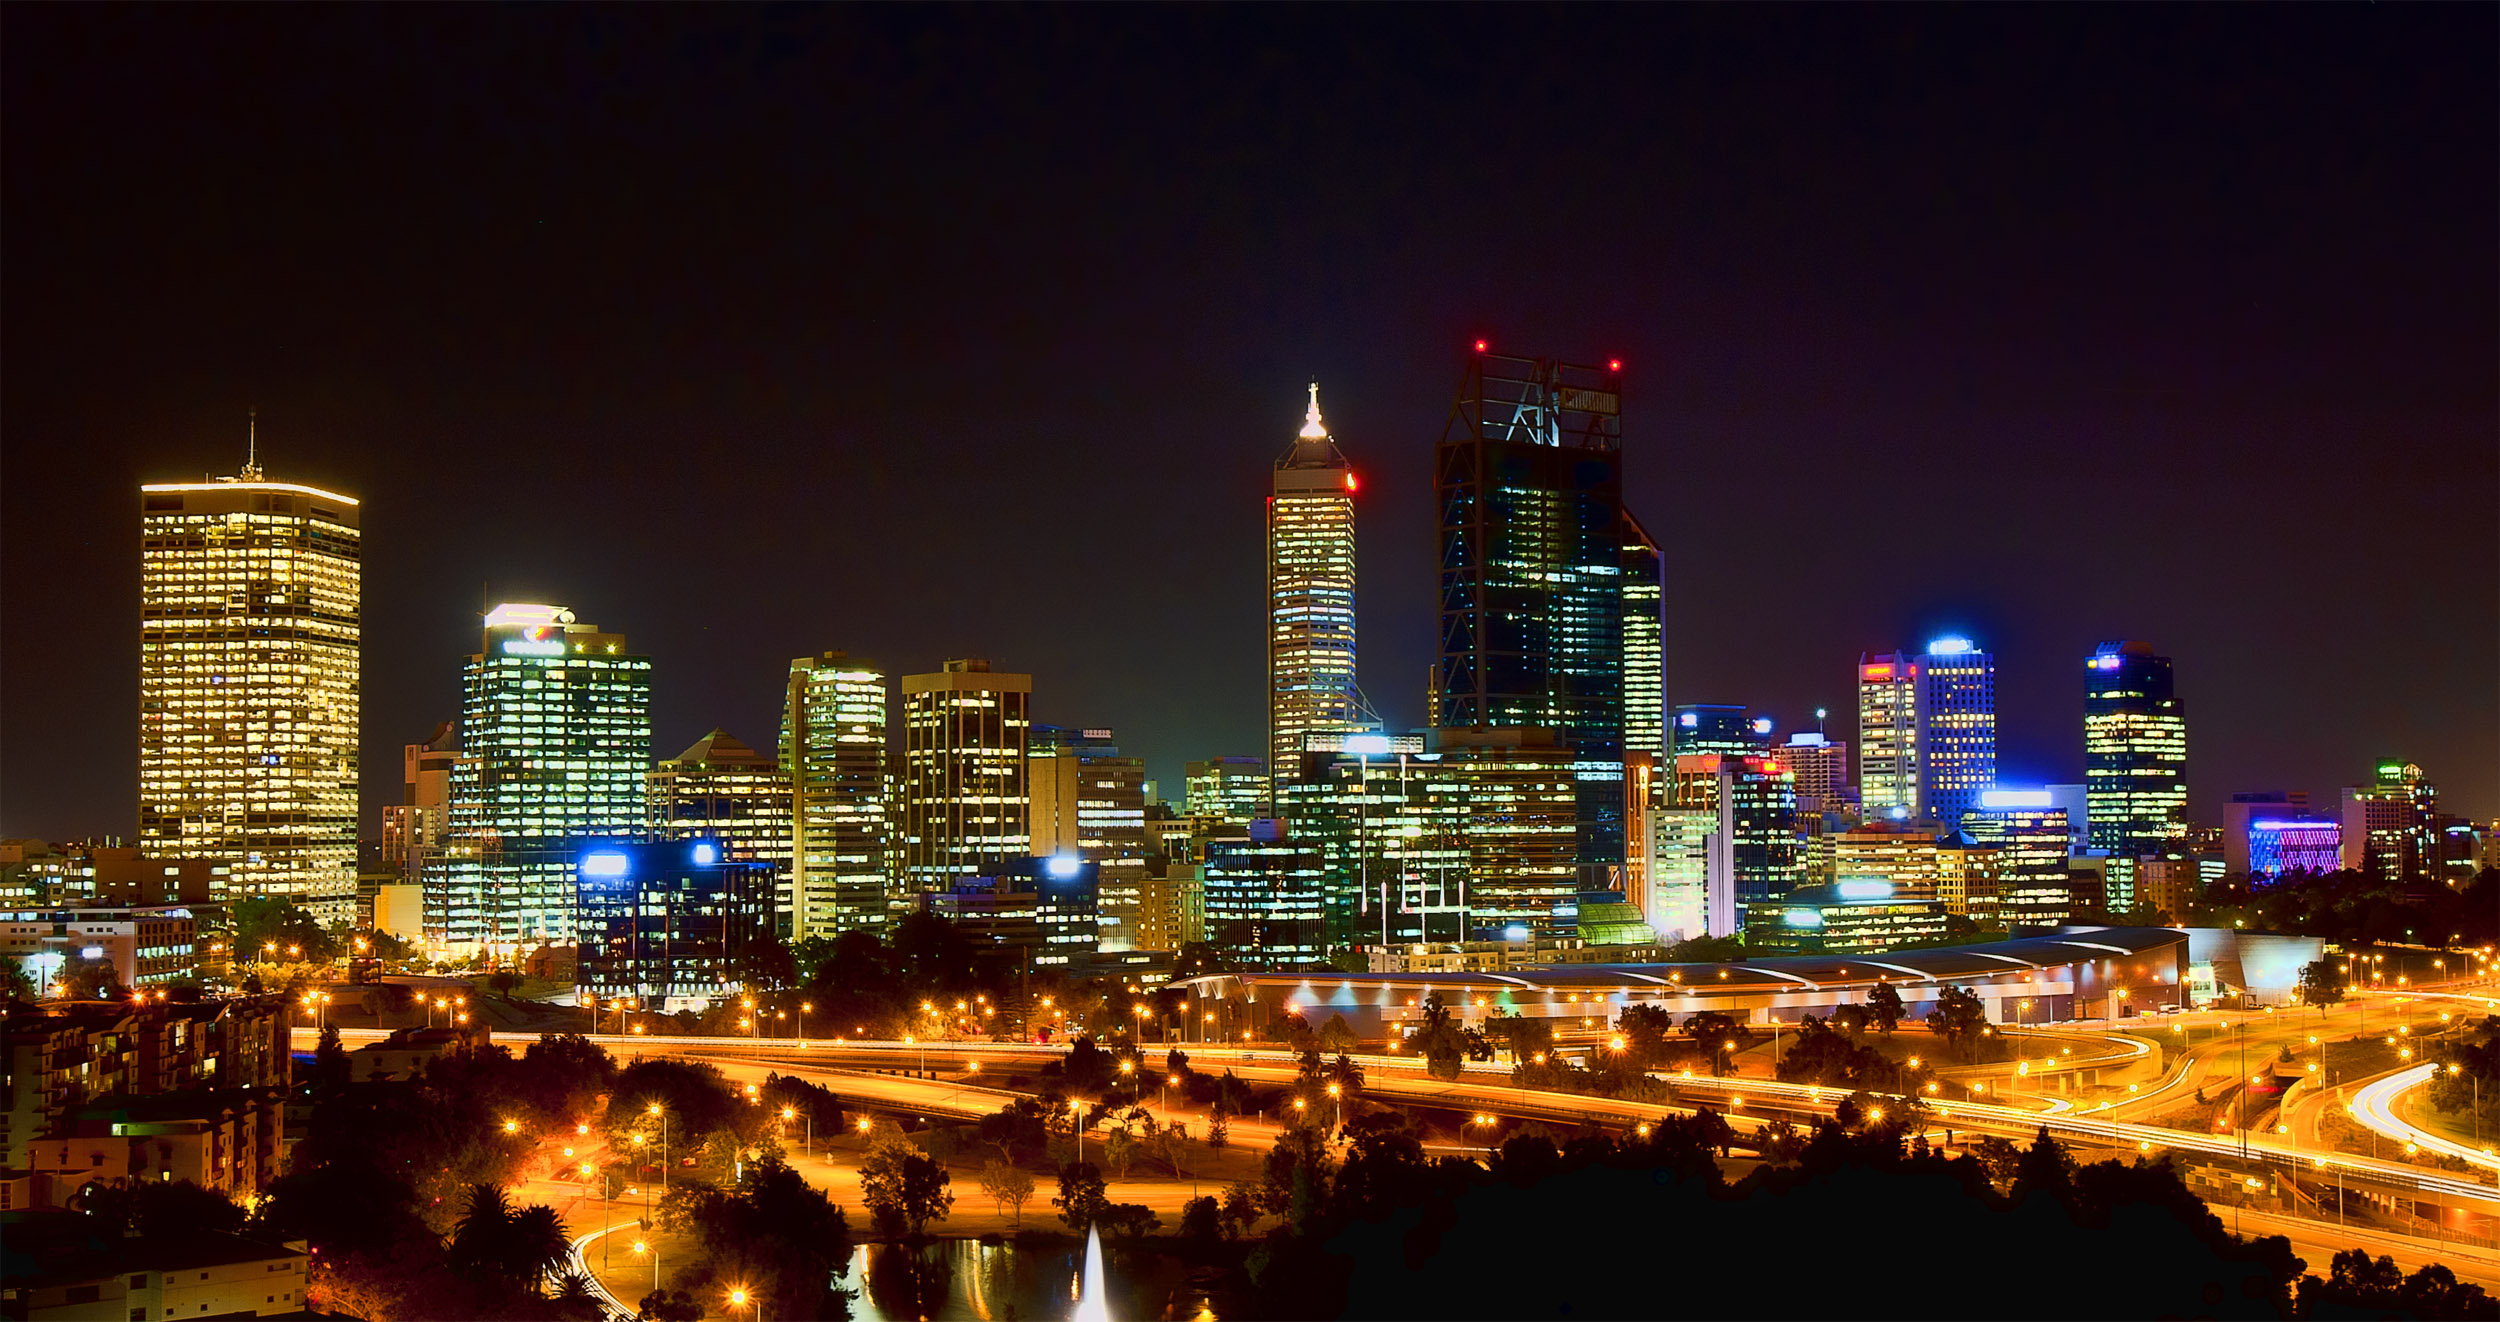 Perth City at Night from Kings Park